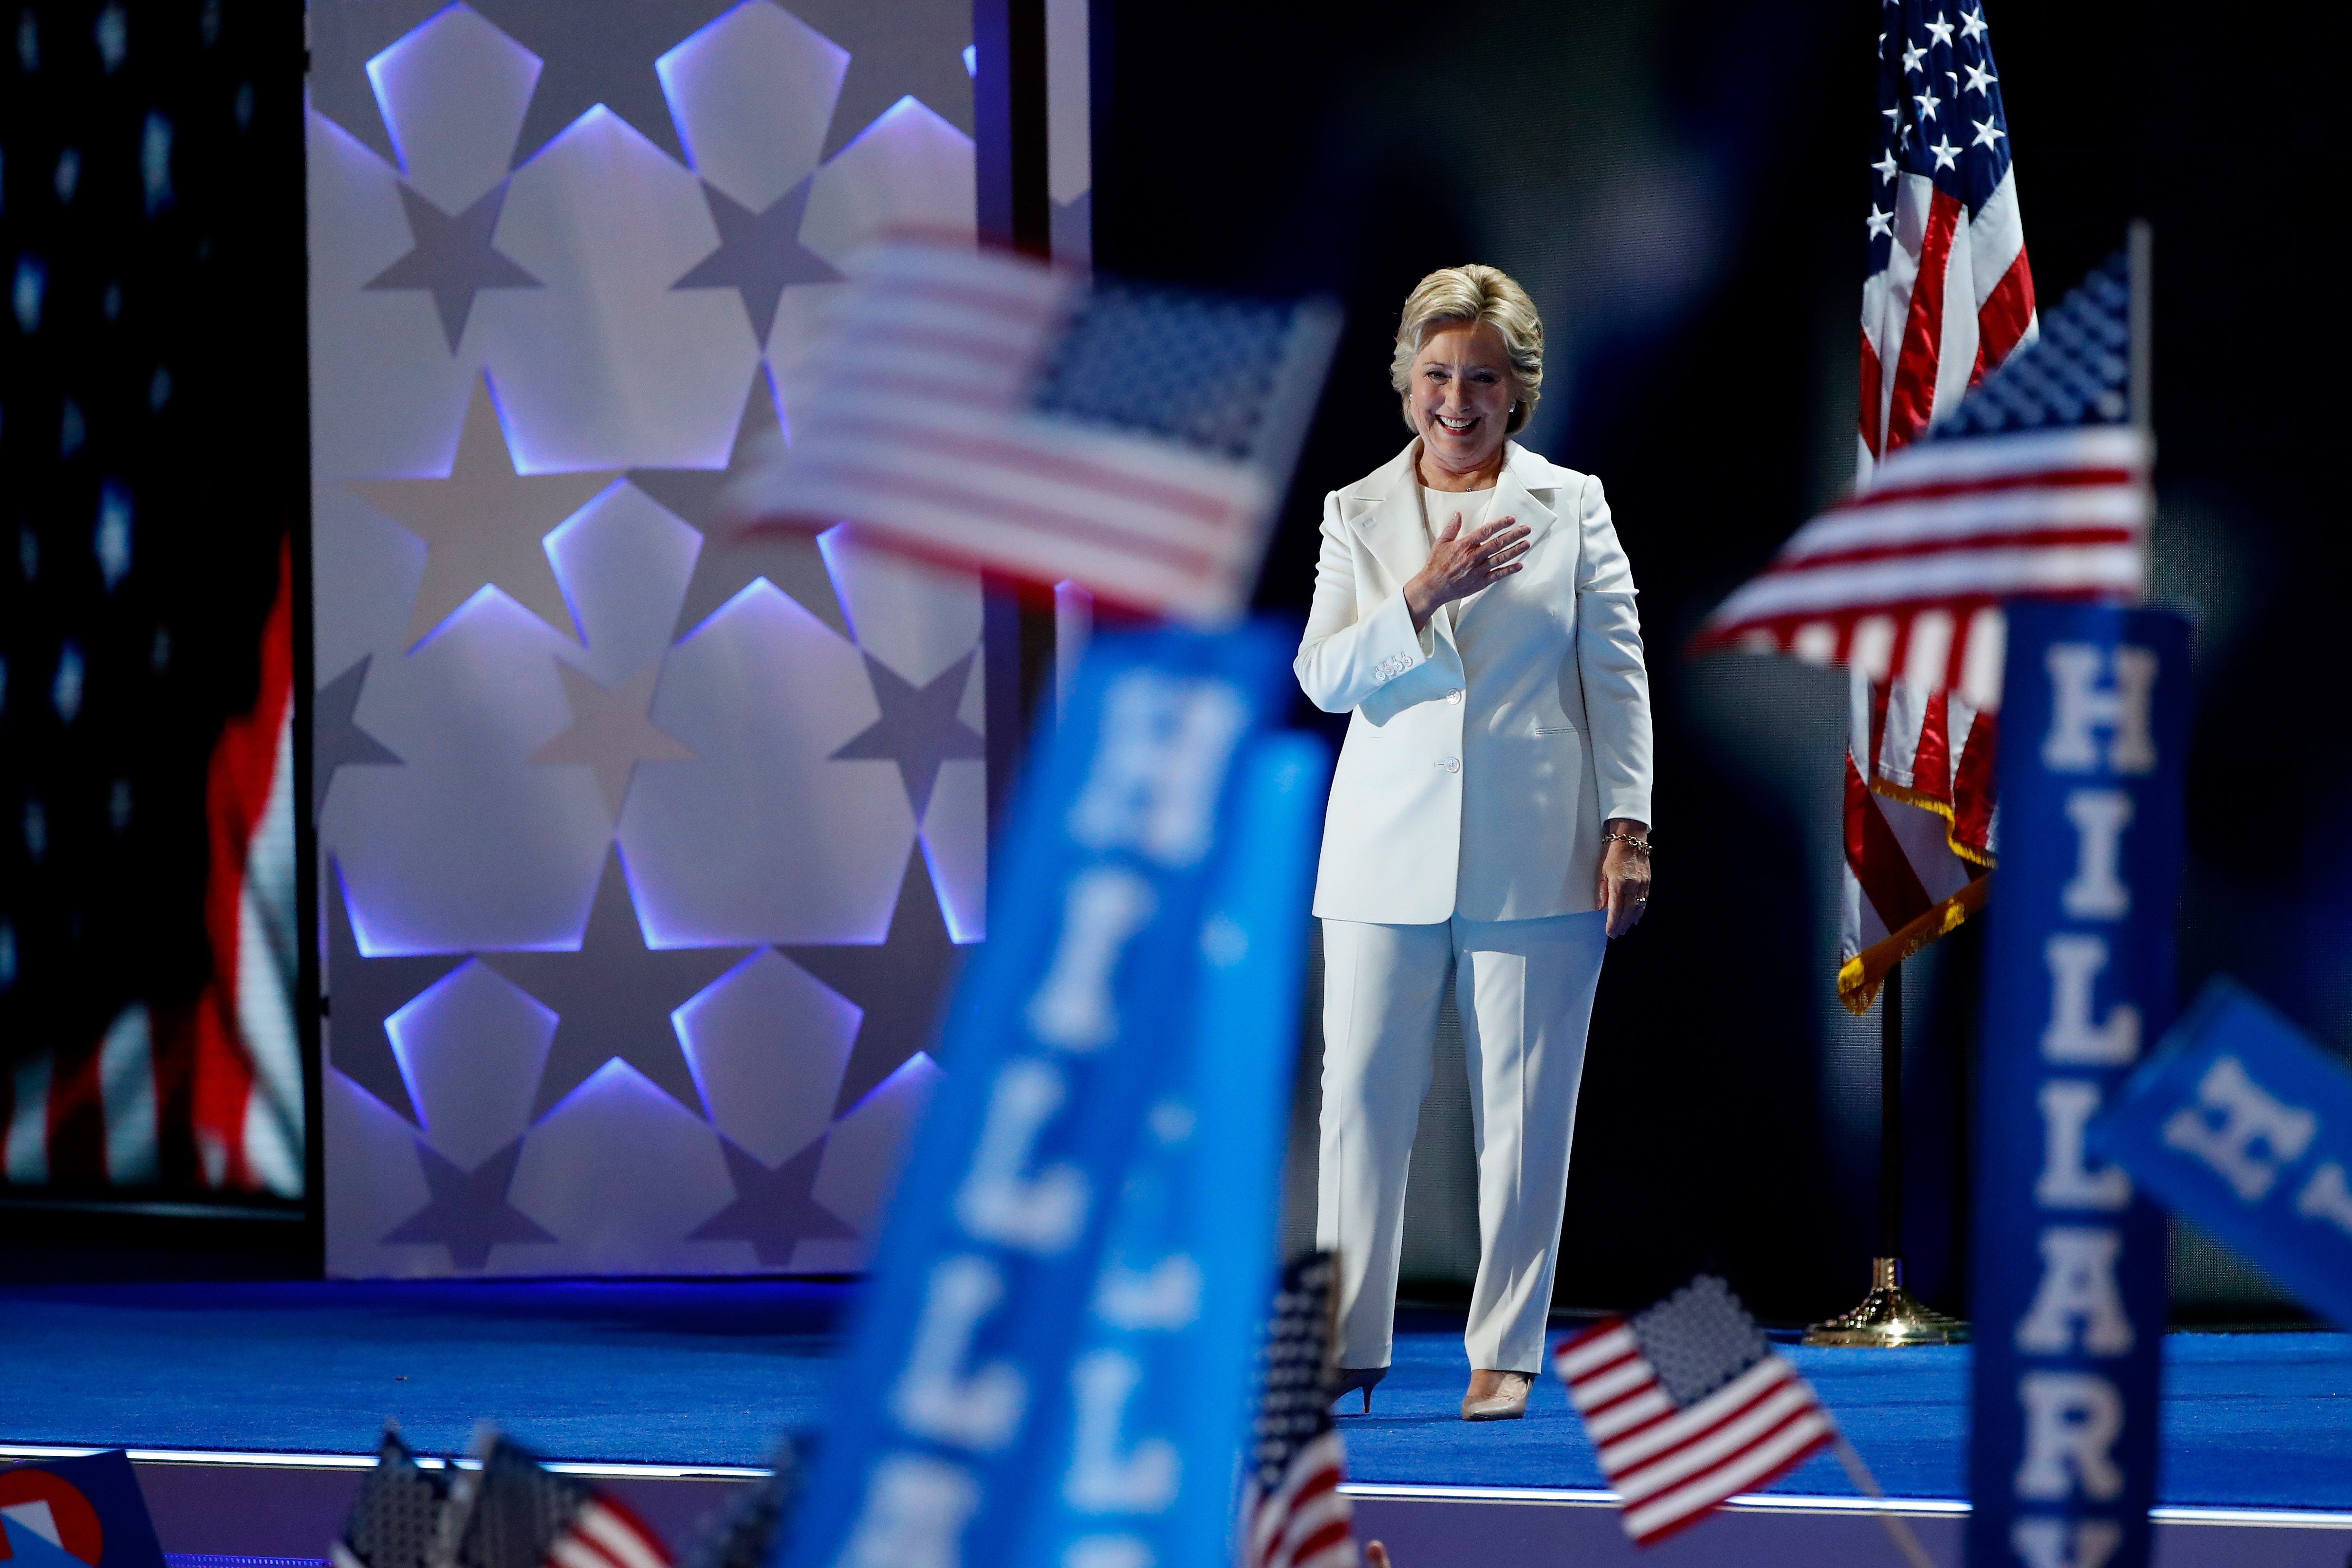 Hillary Clinton on stage at the Democratic National Convention.